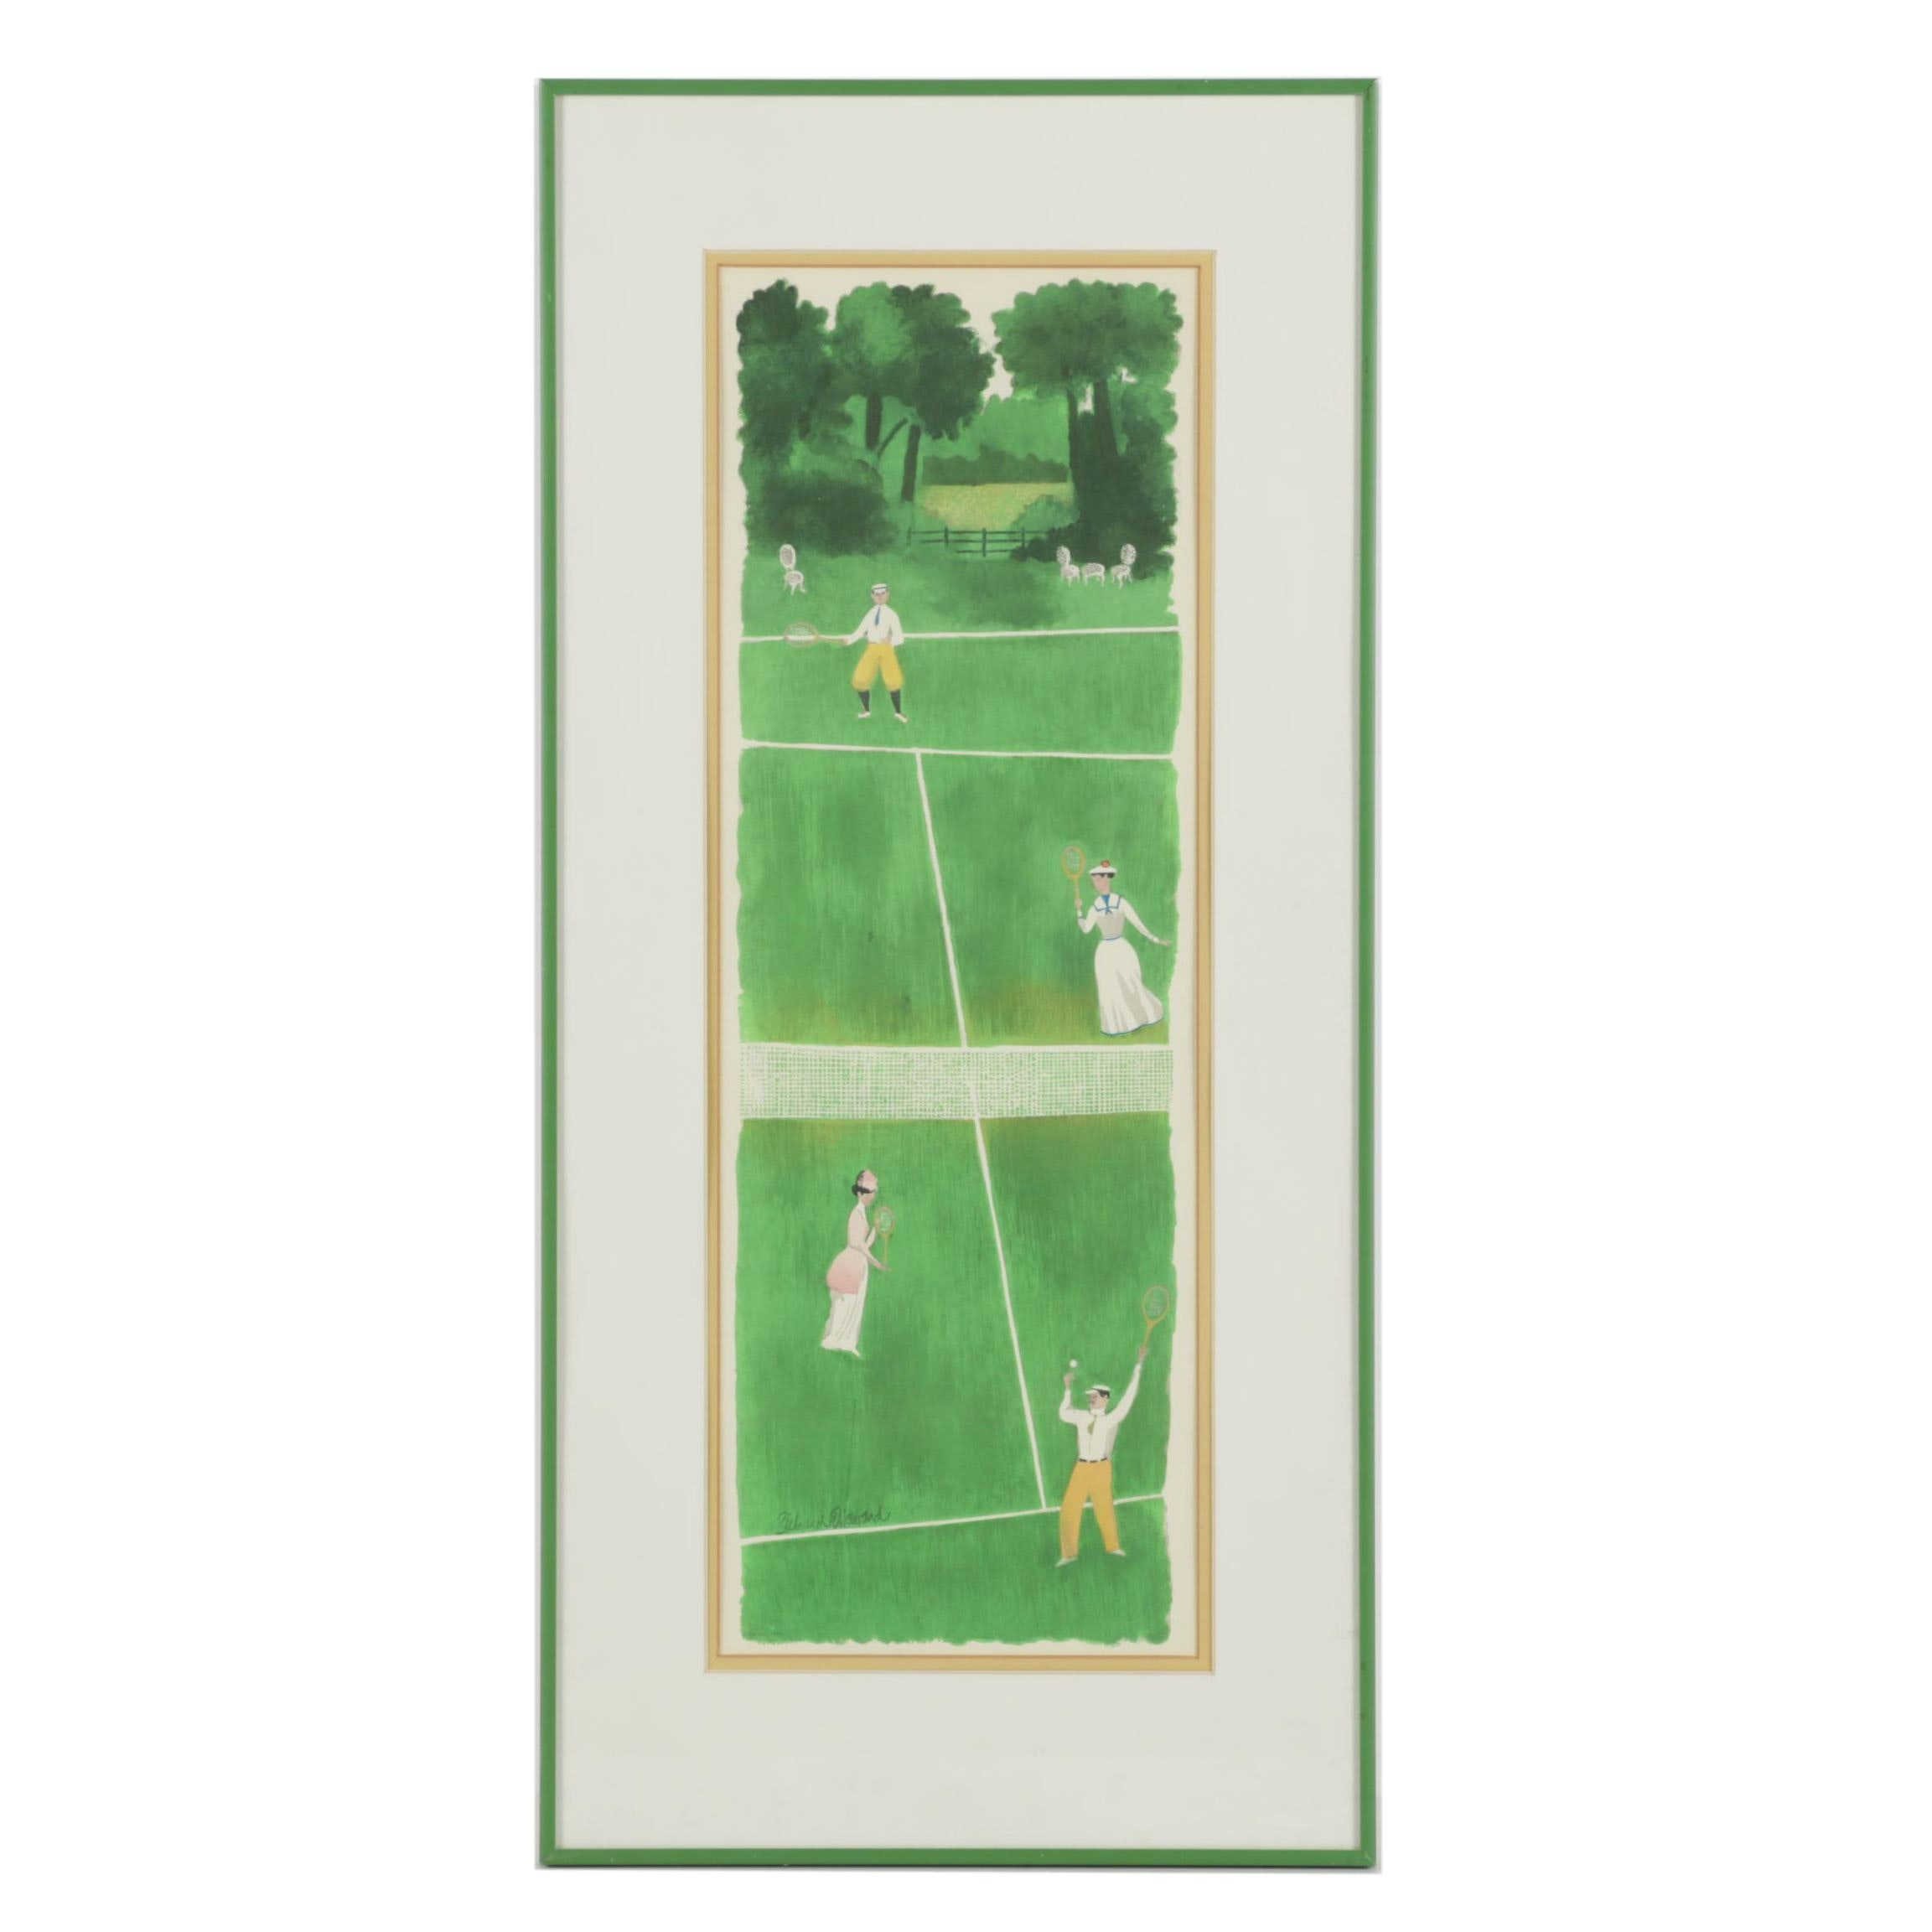 Richard Howard 1973 Serigraph on Paper of Early 20th Century Tennis Match